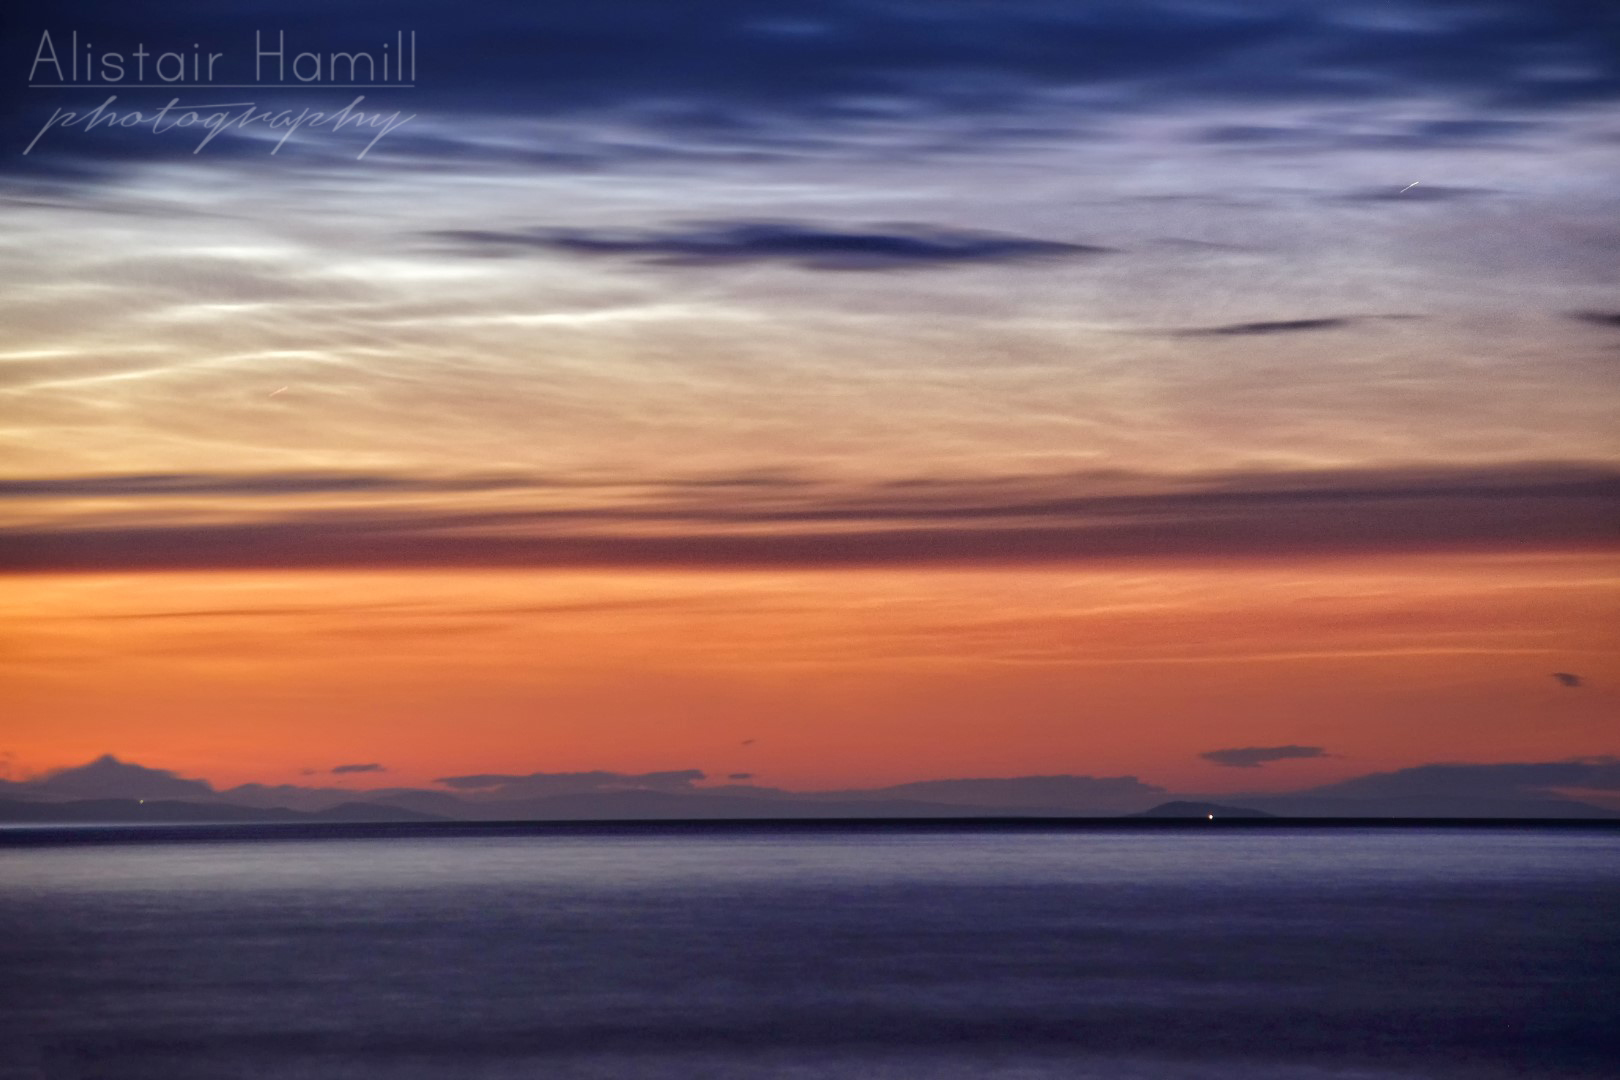 The lighthouse at Sanda Island shines all the way over to Garron Point, while the noctilucent clouds put on a wonderful display in the skies above.